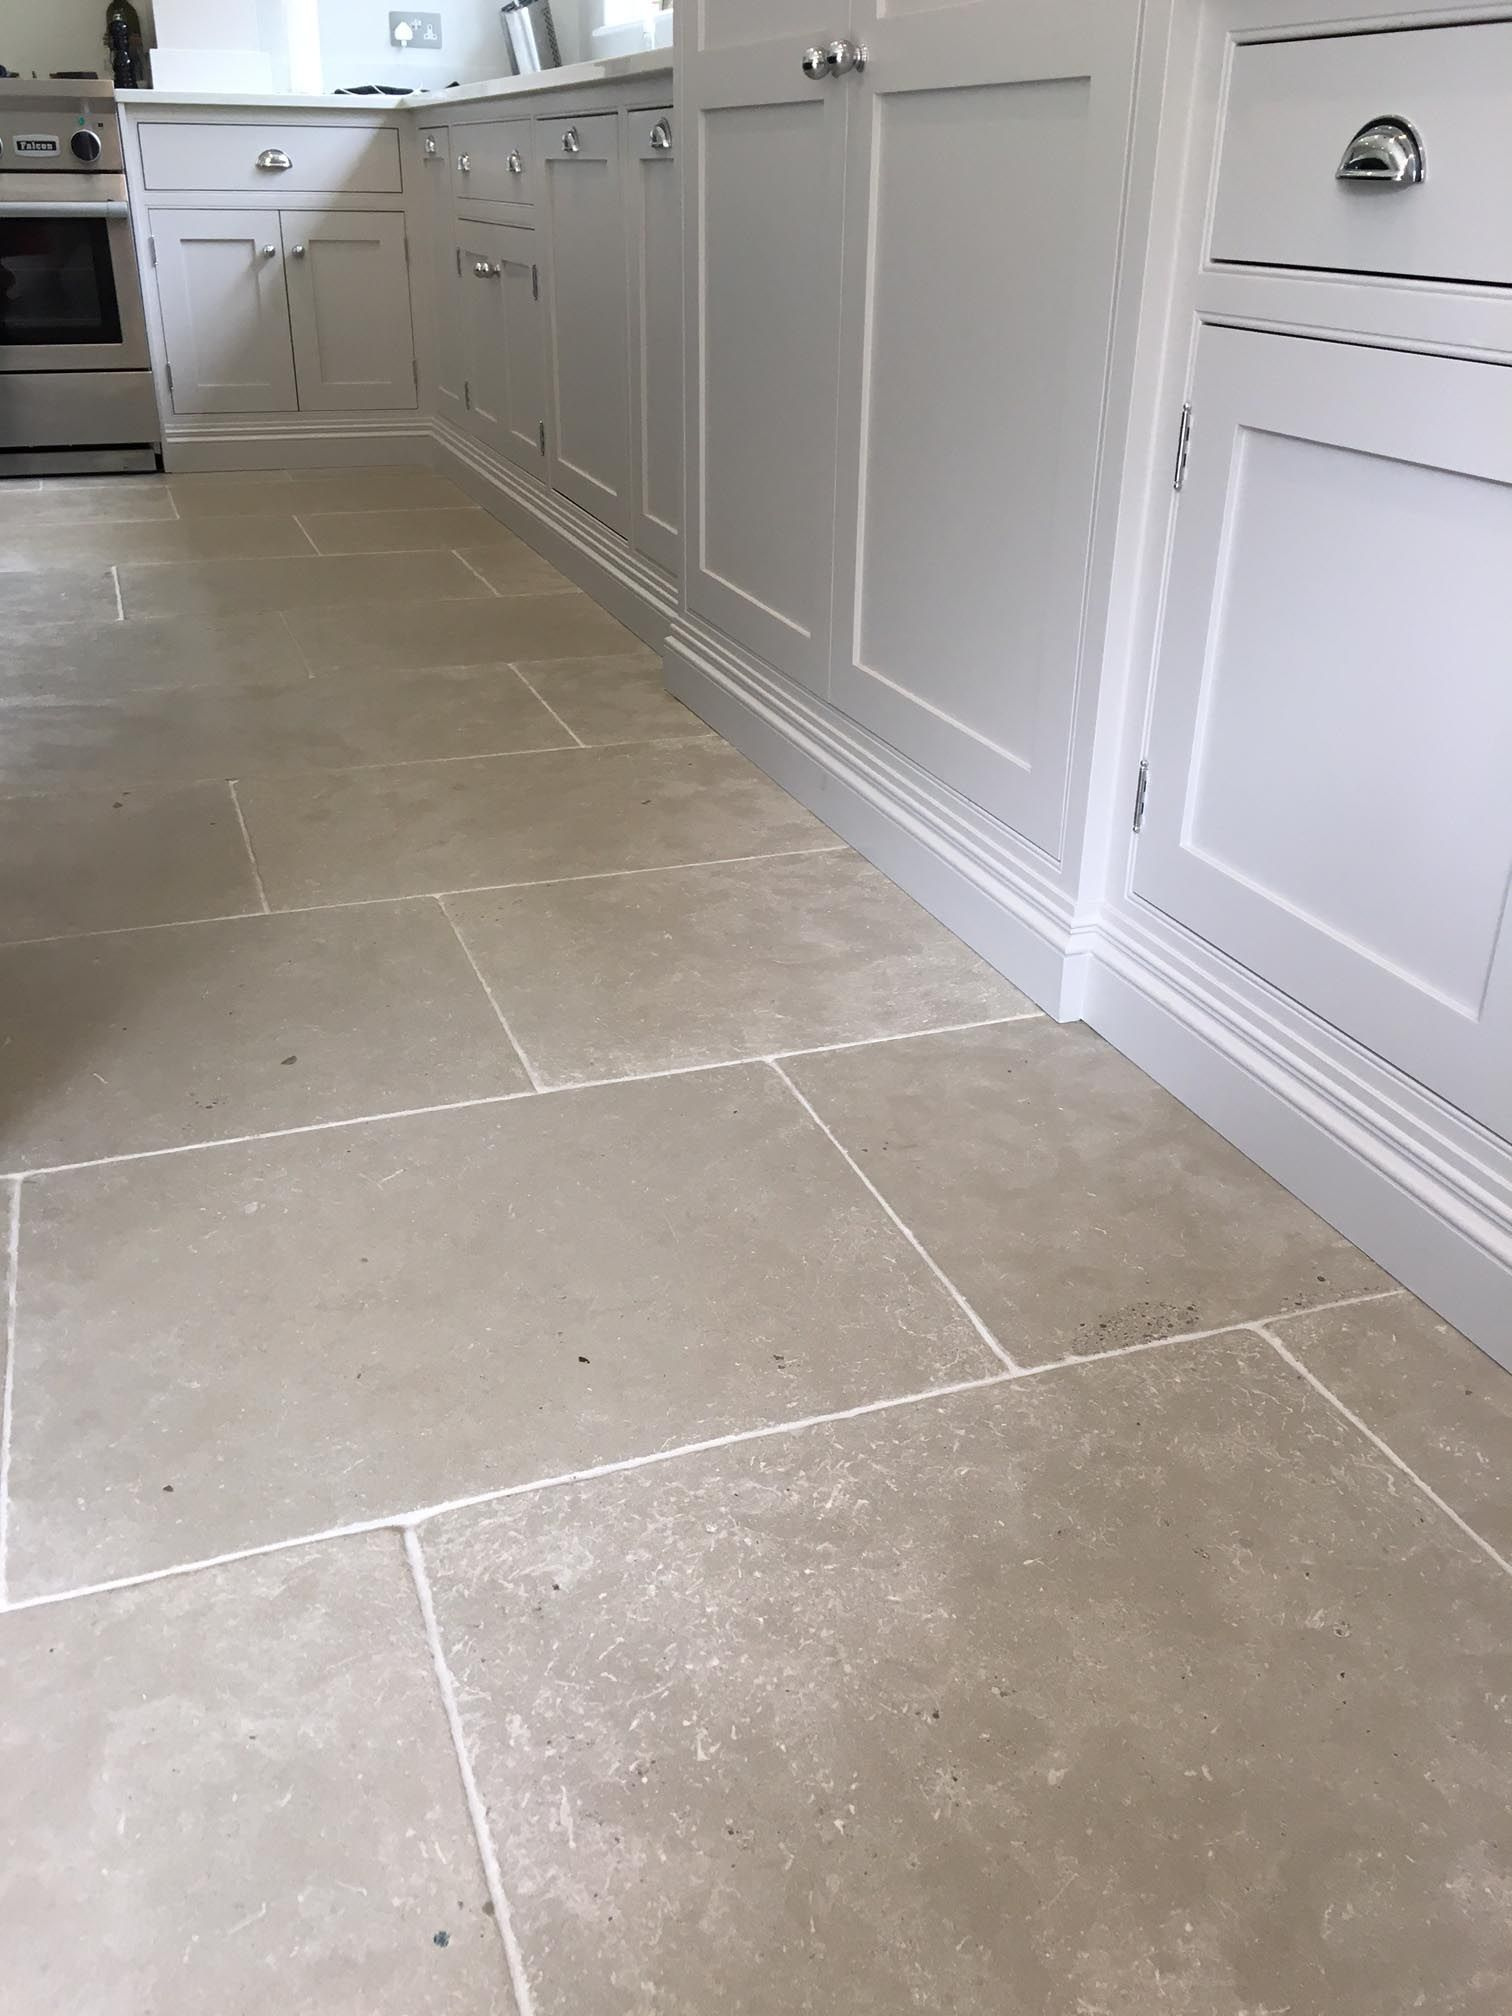 Kitchen Floor Tile Gray Paris Grey Limestone Tiles For A Durable Kitchen Floor